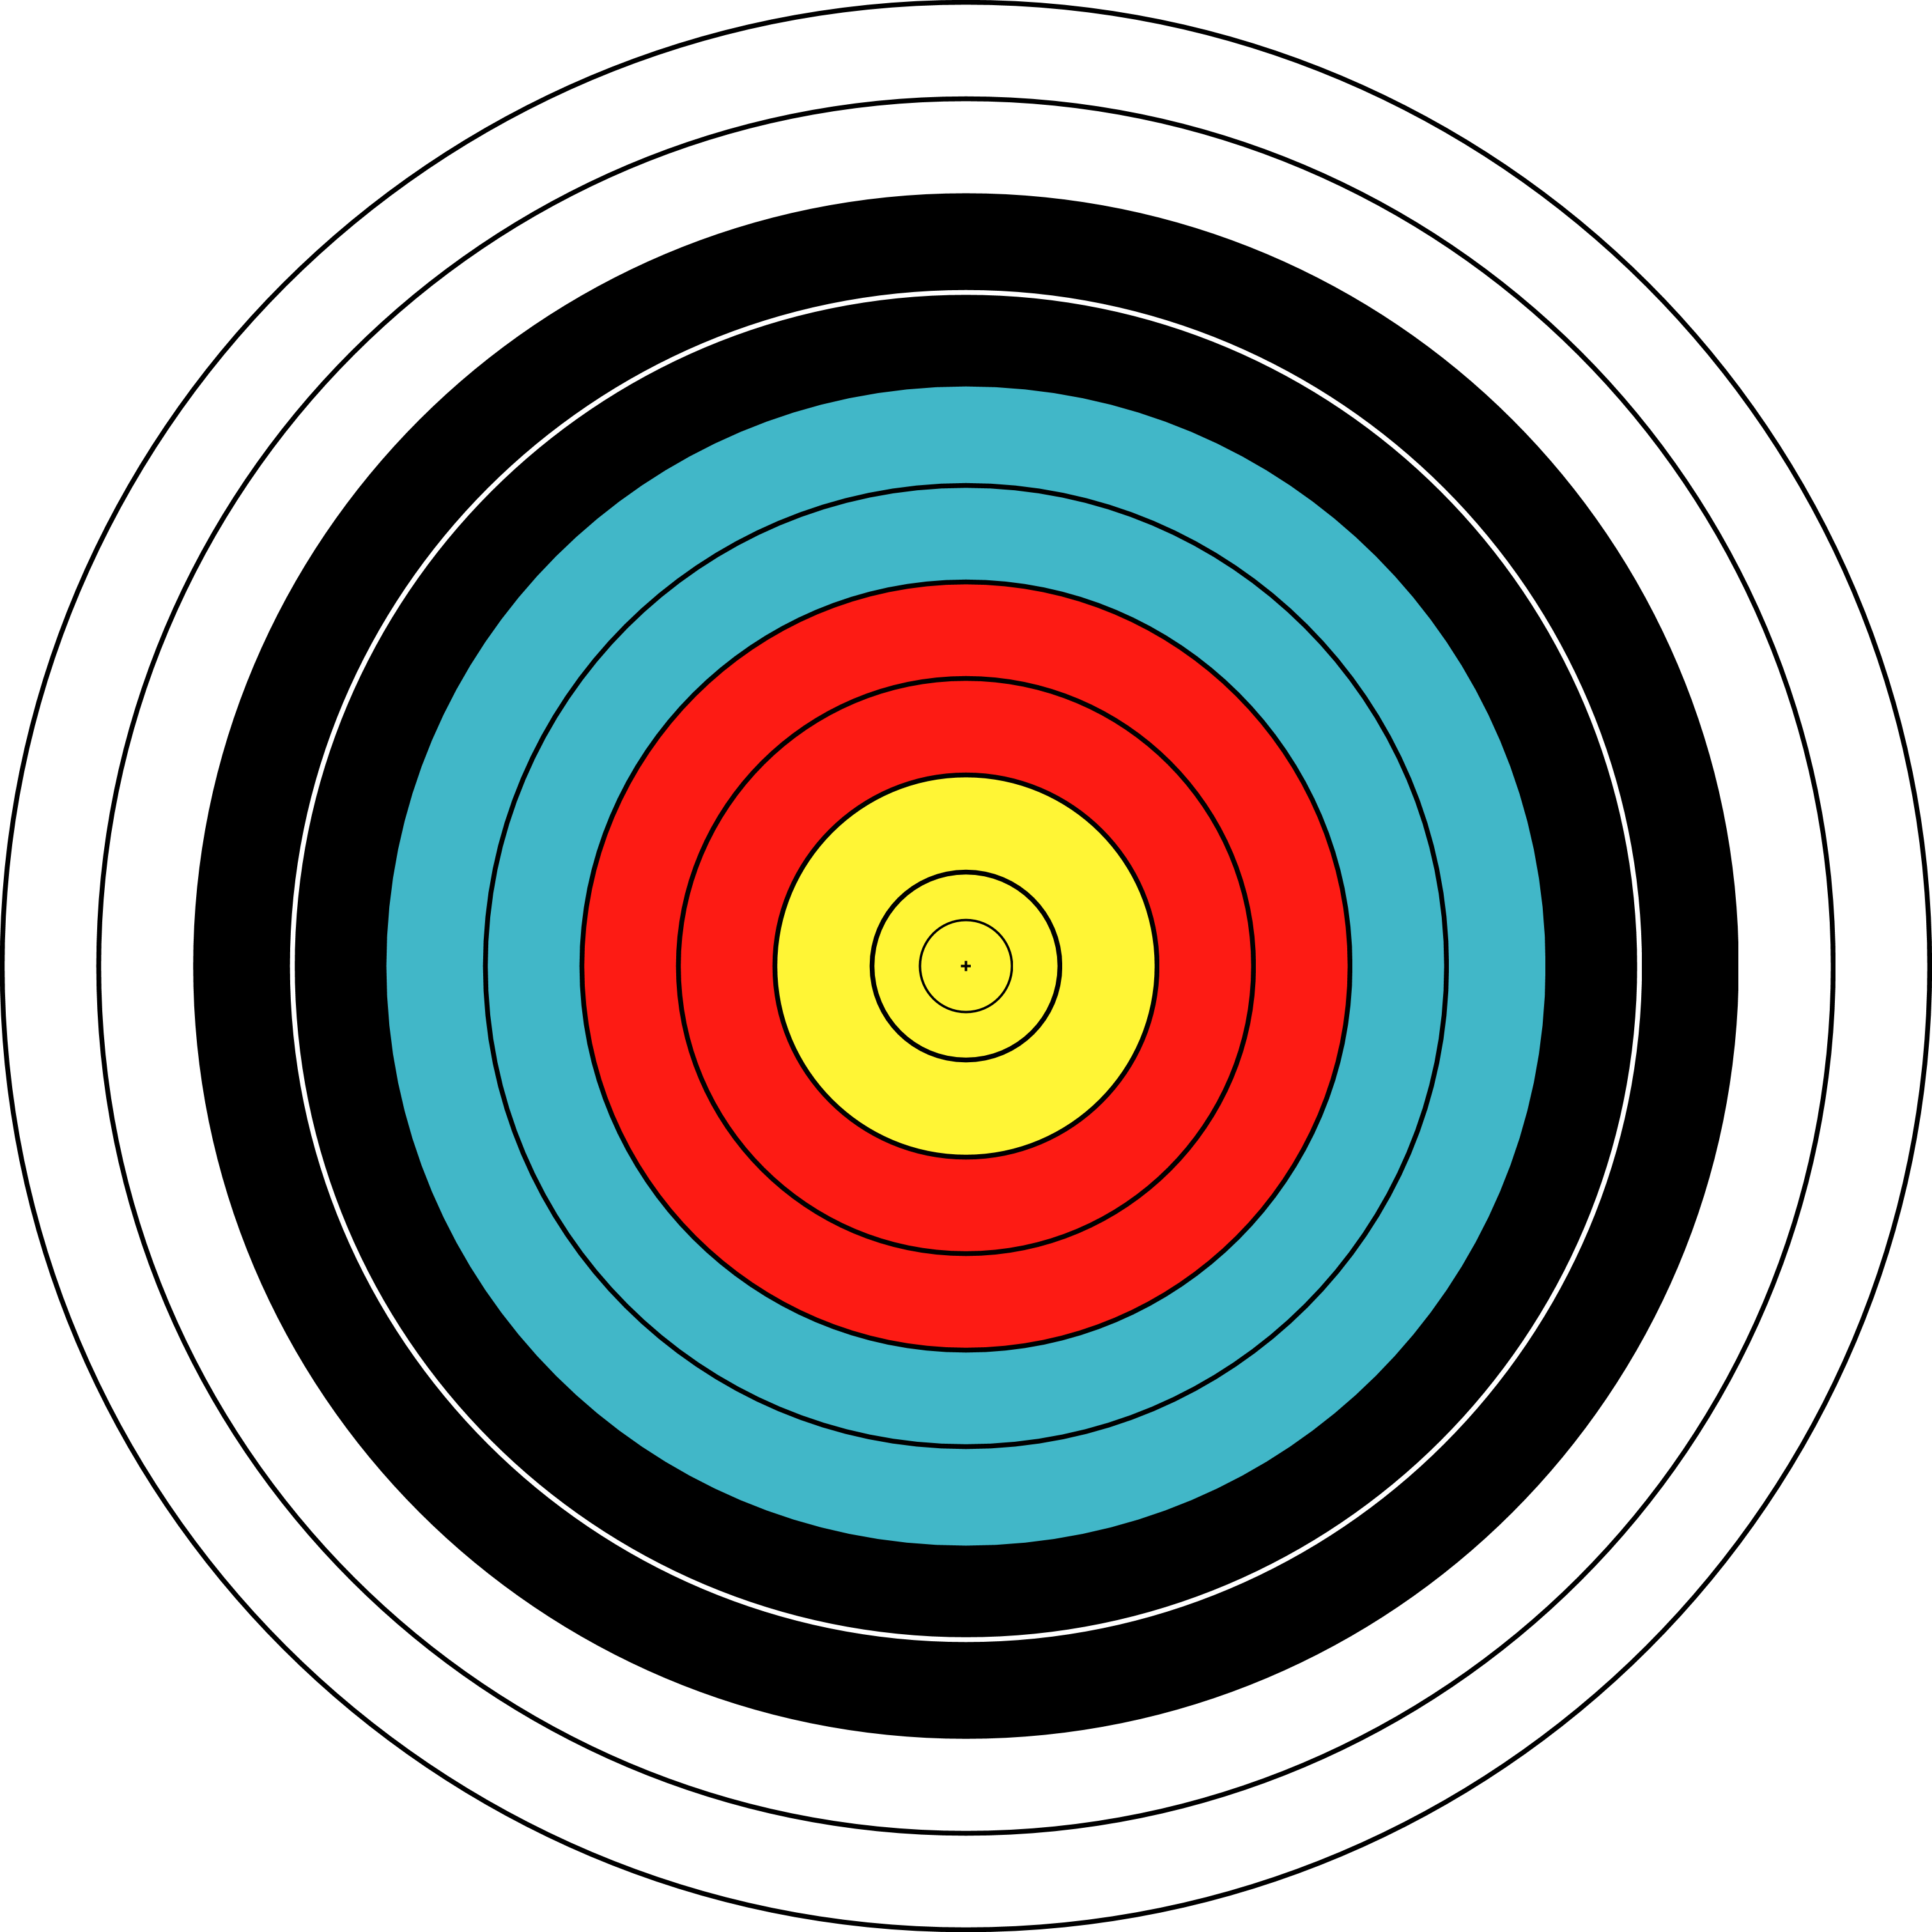 Trust image in printable archery targets